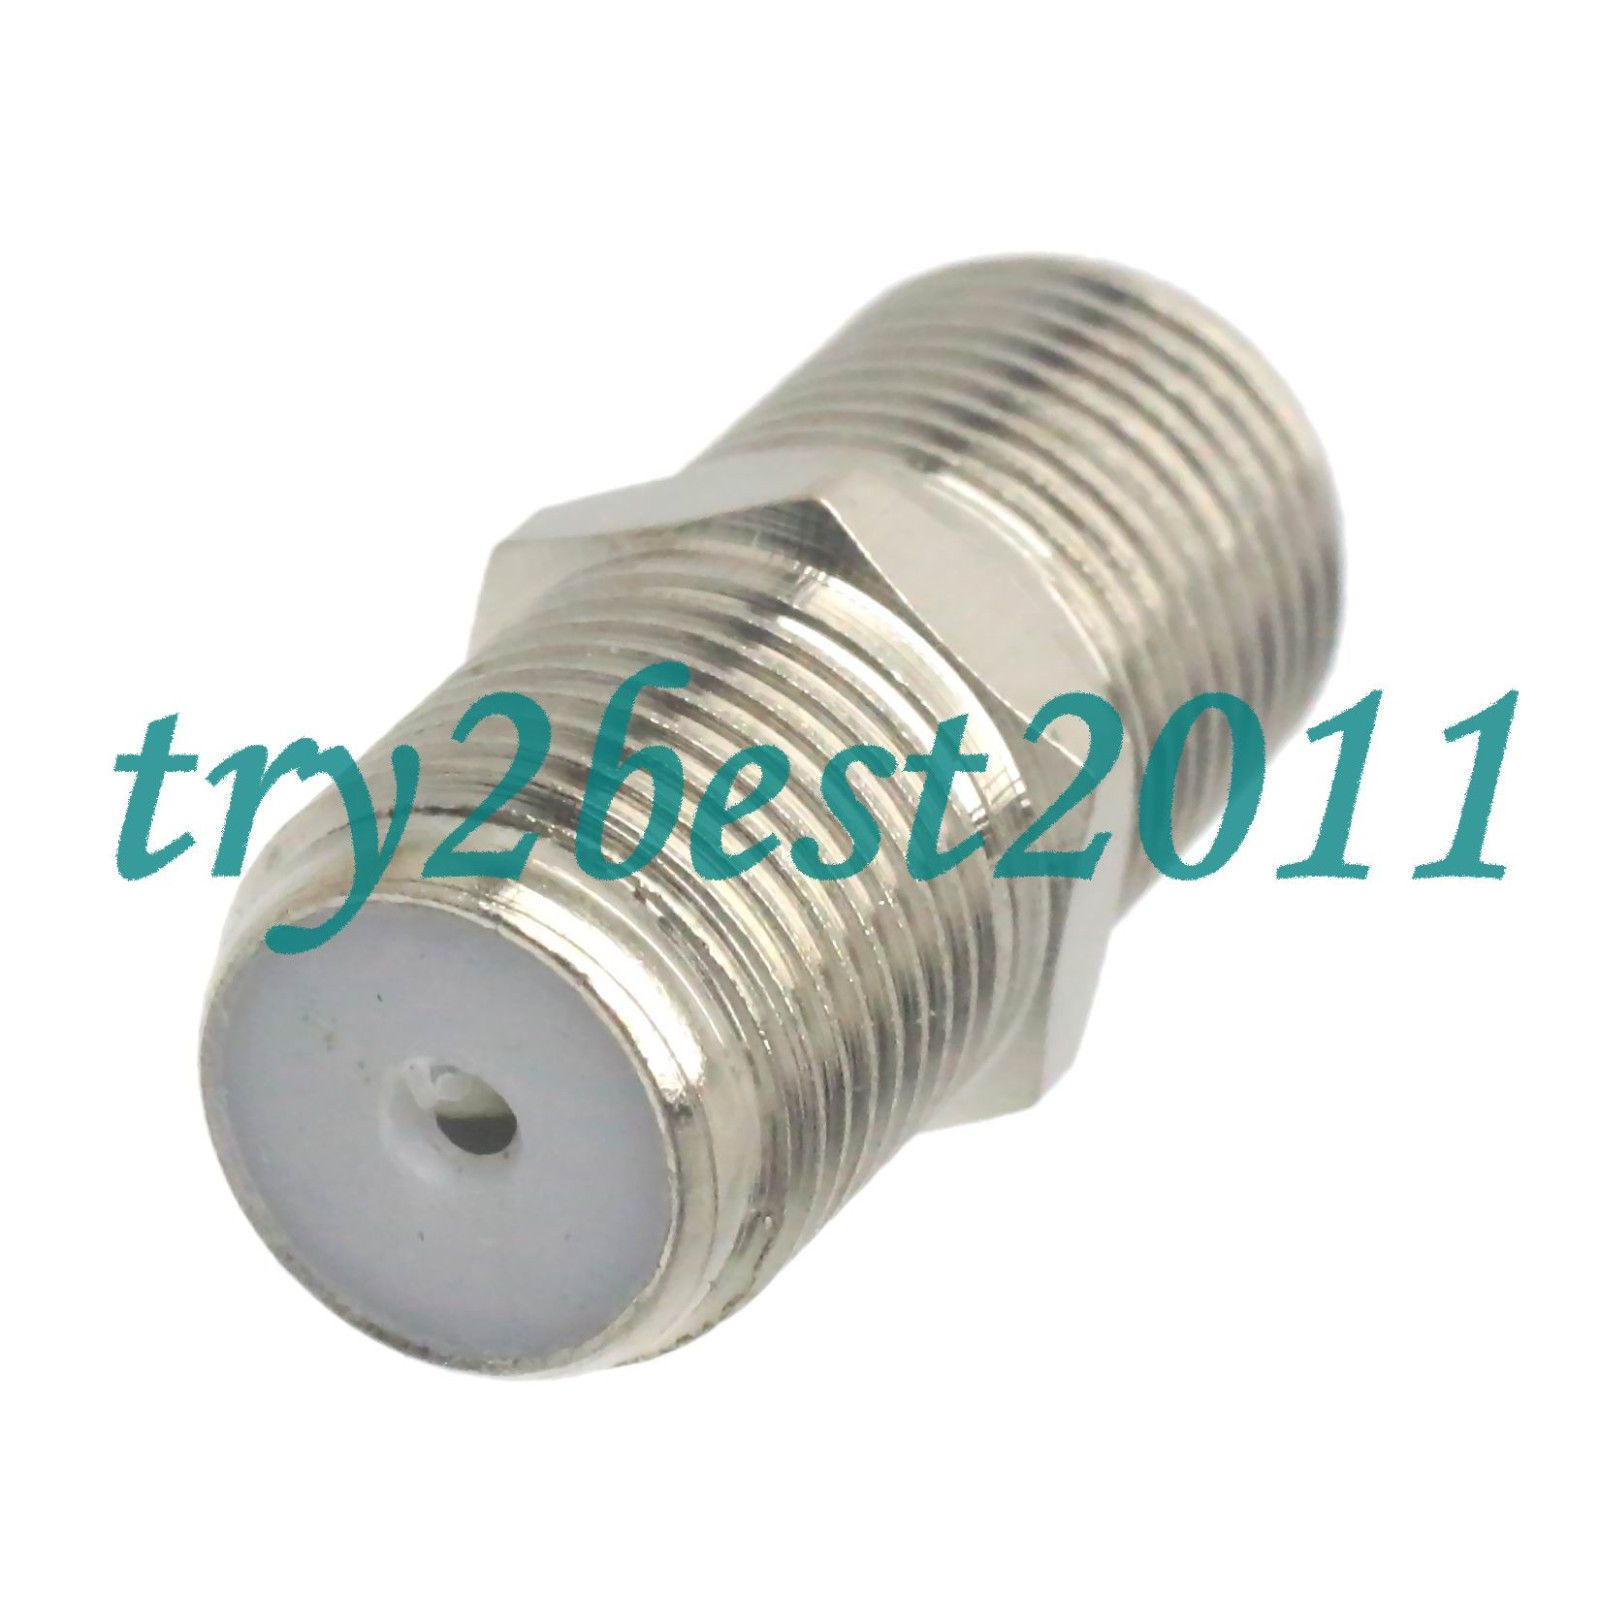 12 1pce Adapter Connector F Tv Jack Pin To F Tv Jack Pin Rf